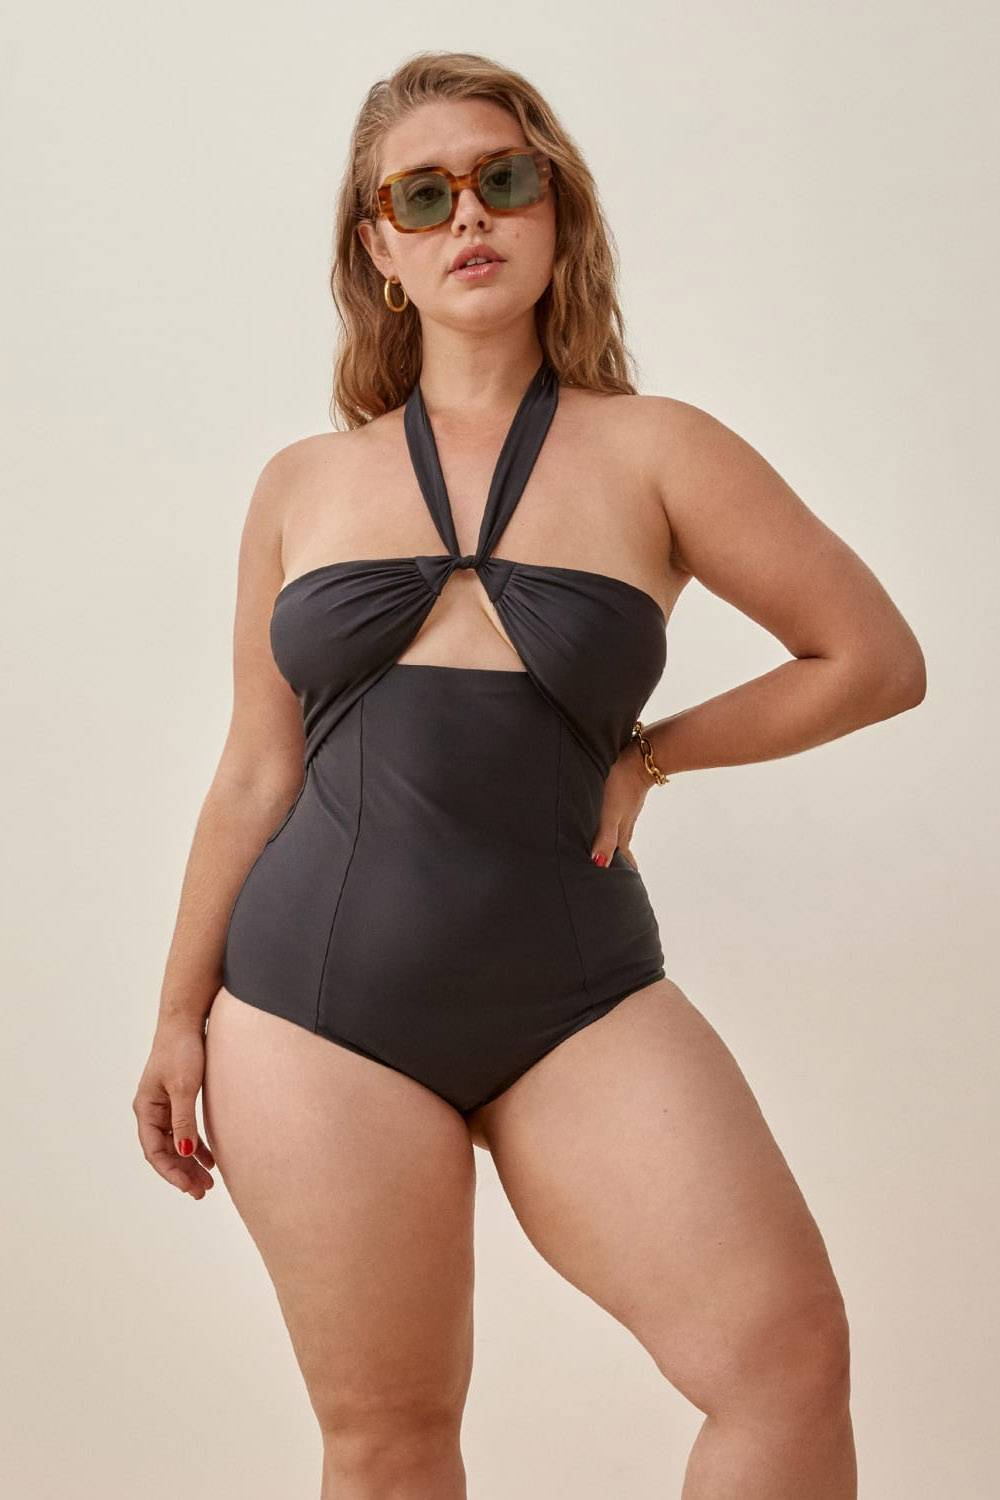 reformation cheap swimsuit usa made